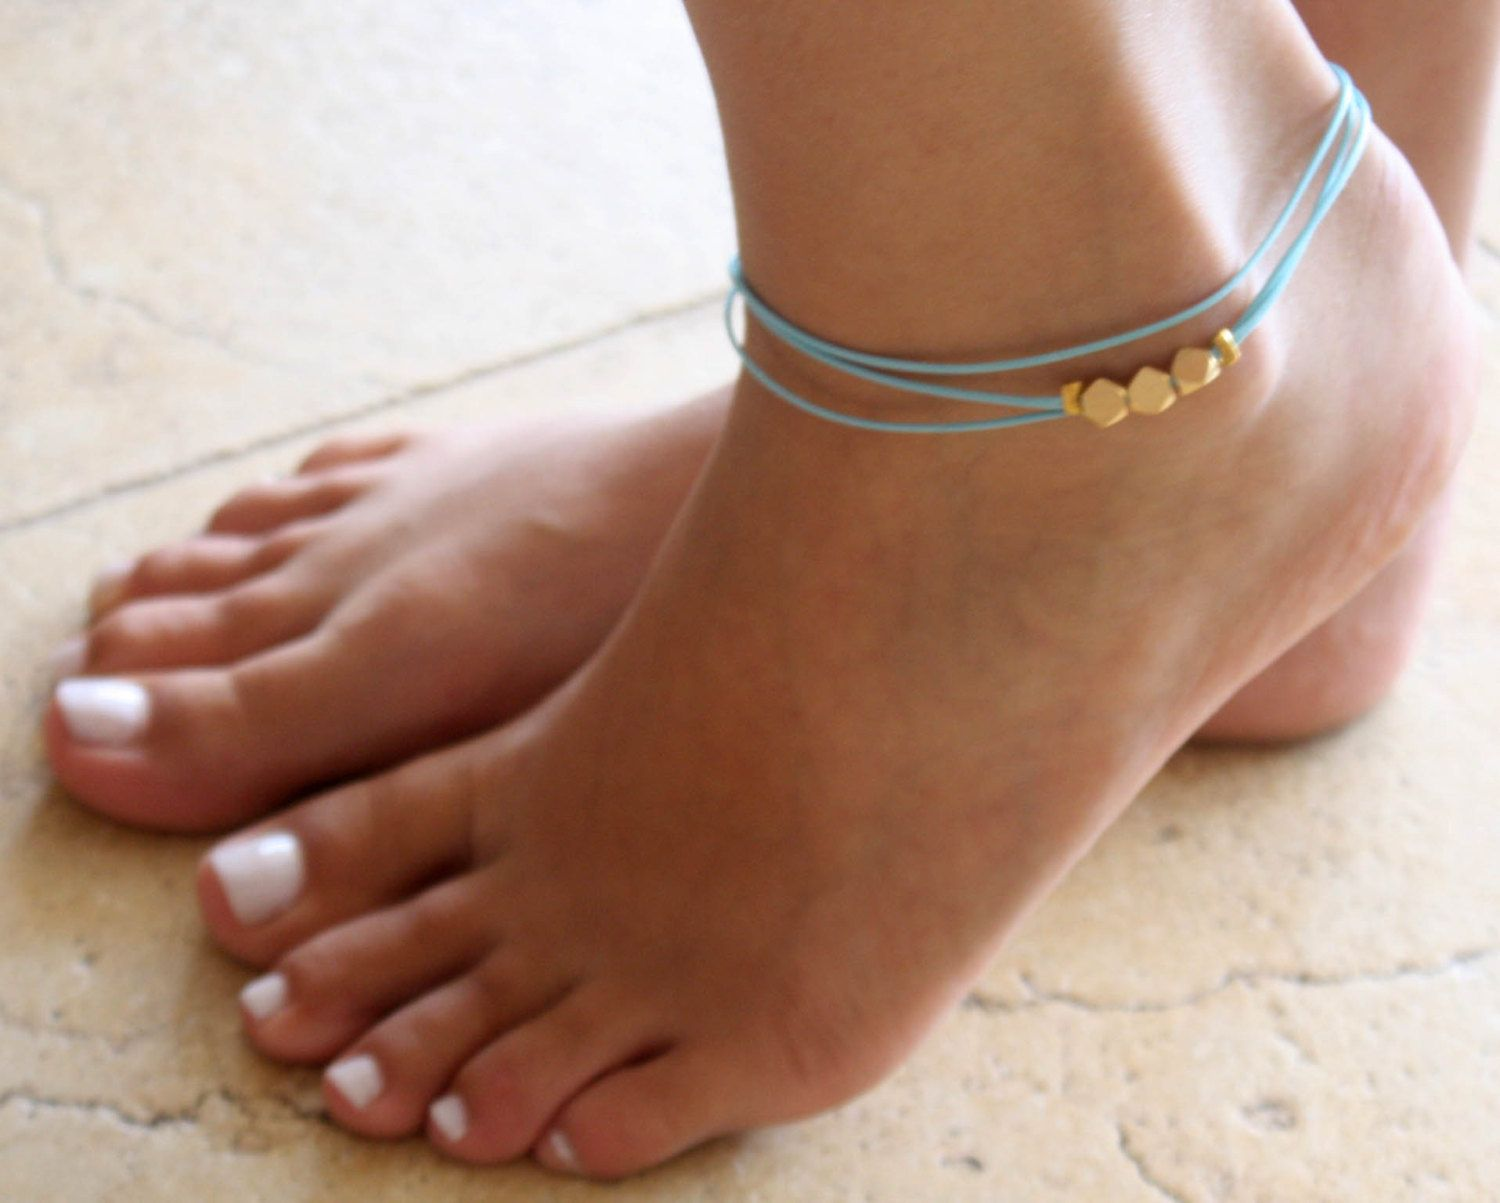 ankle good bracelets turquoise sybaris women luck bracelet olizz and for anklet gold wishbone sideways